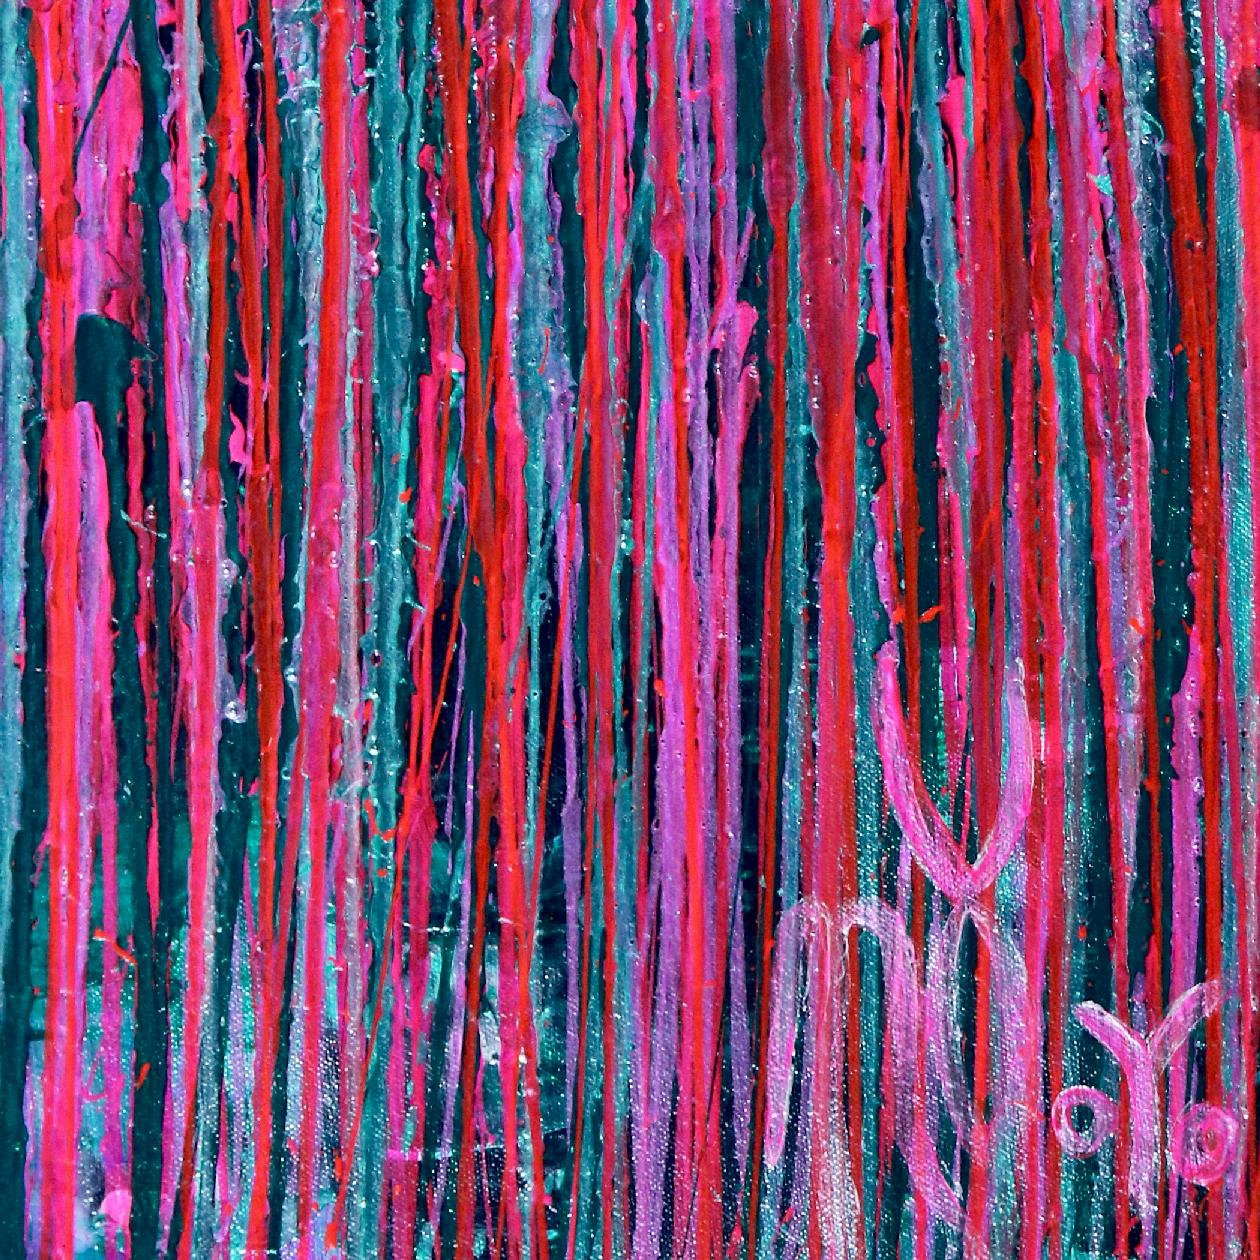 Signature - Pink Synergy (Fantasy Garden) - Metallic Abstract Painting (2020) by Nestor Toro